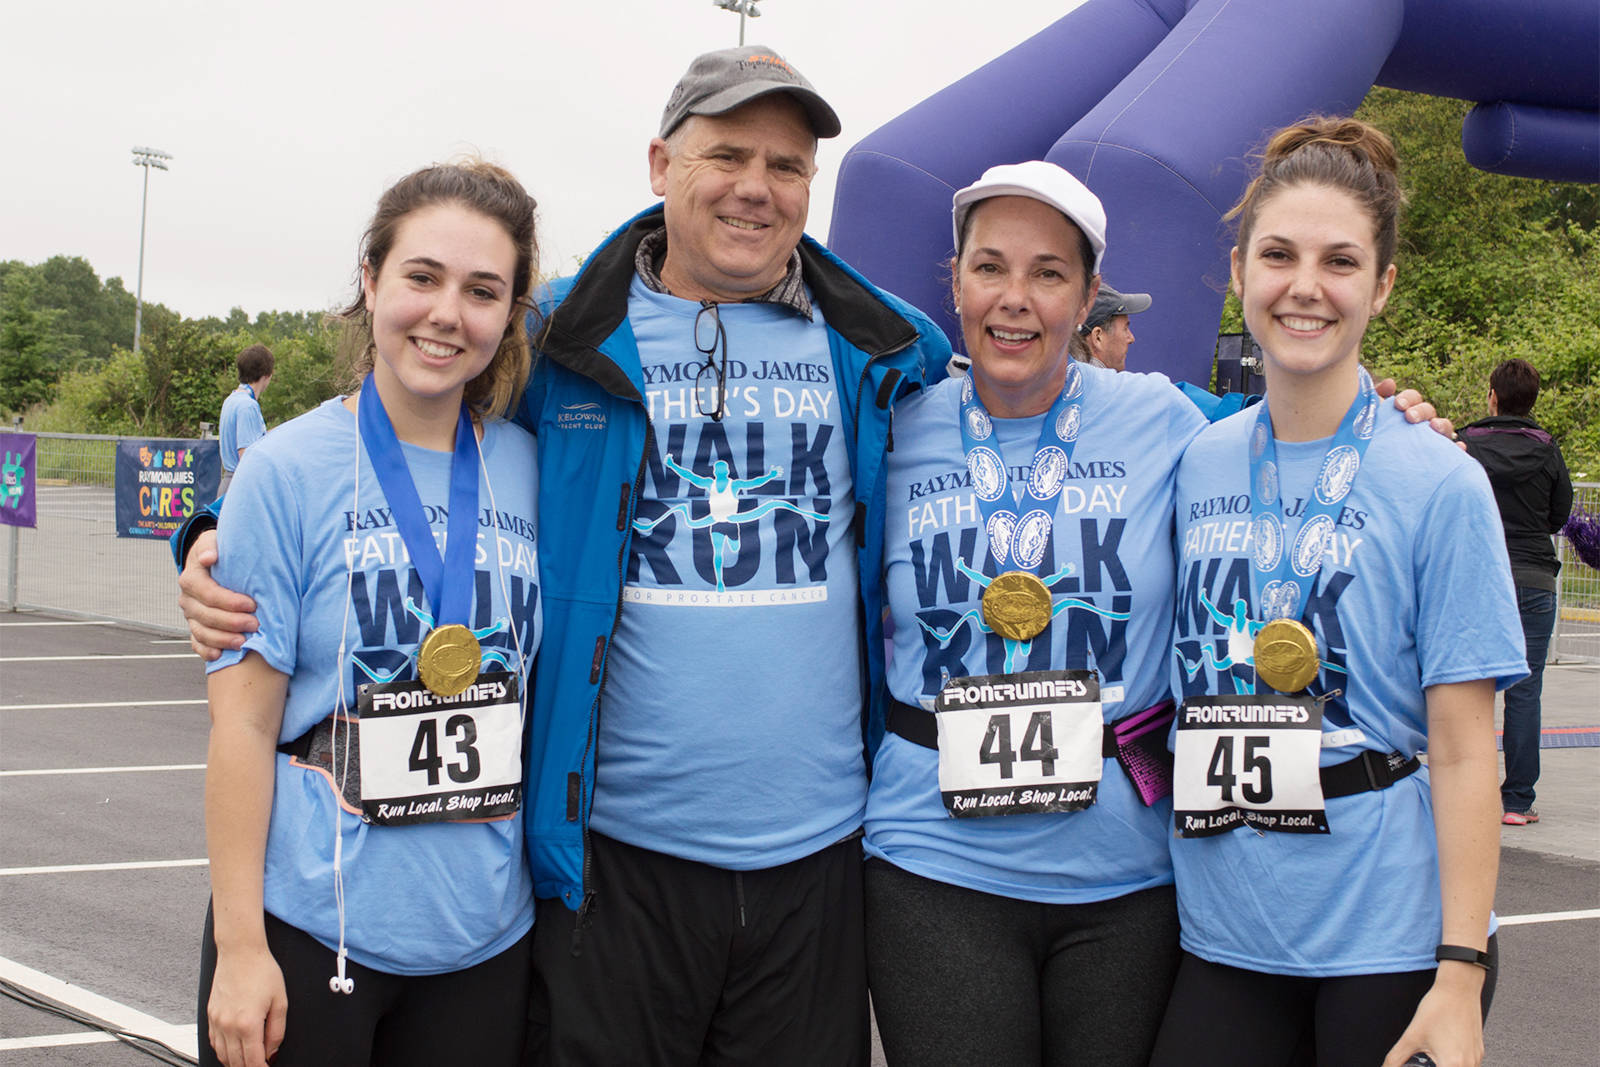 Participants in the annual Raymond James Father's Day Walk and Run for Prostate Cancer pose for a photo in 2020. This year's fundraiser is being held virtually given continued public health restrictions on gatherings. (Courtesy of Island Prostate Centre)